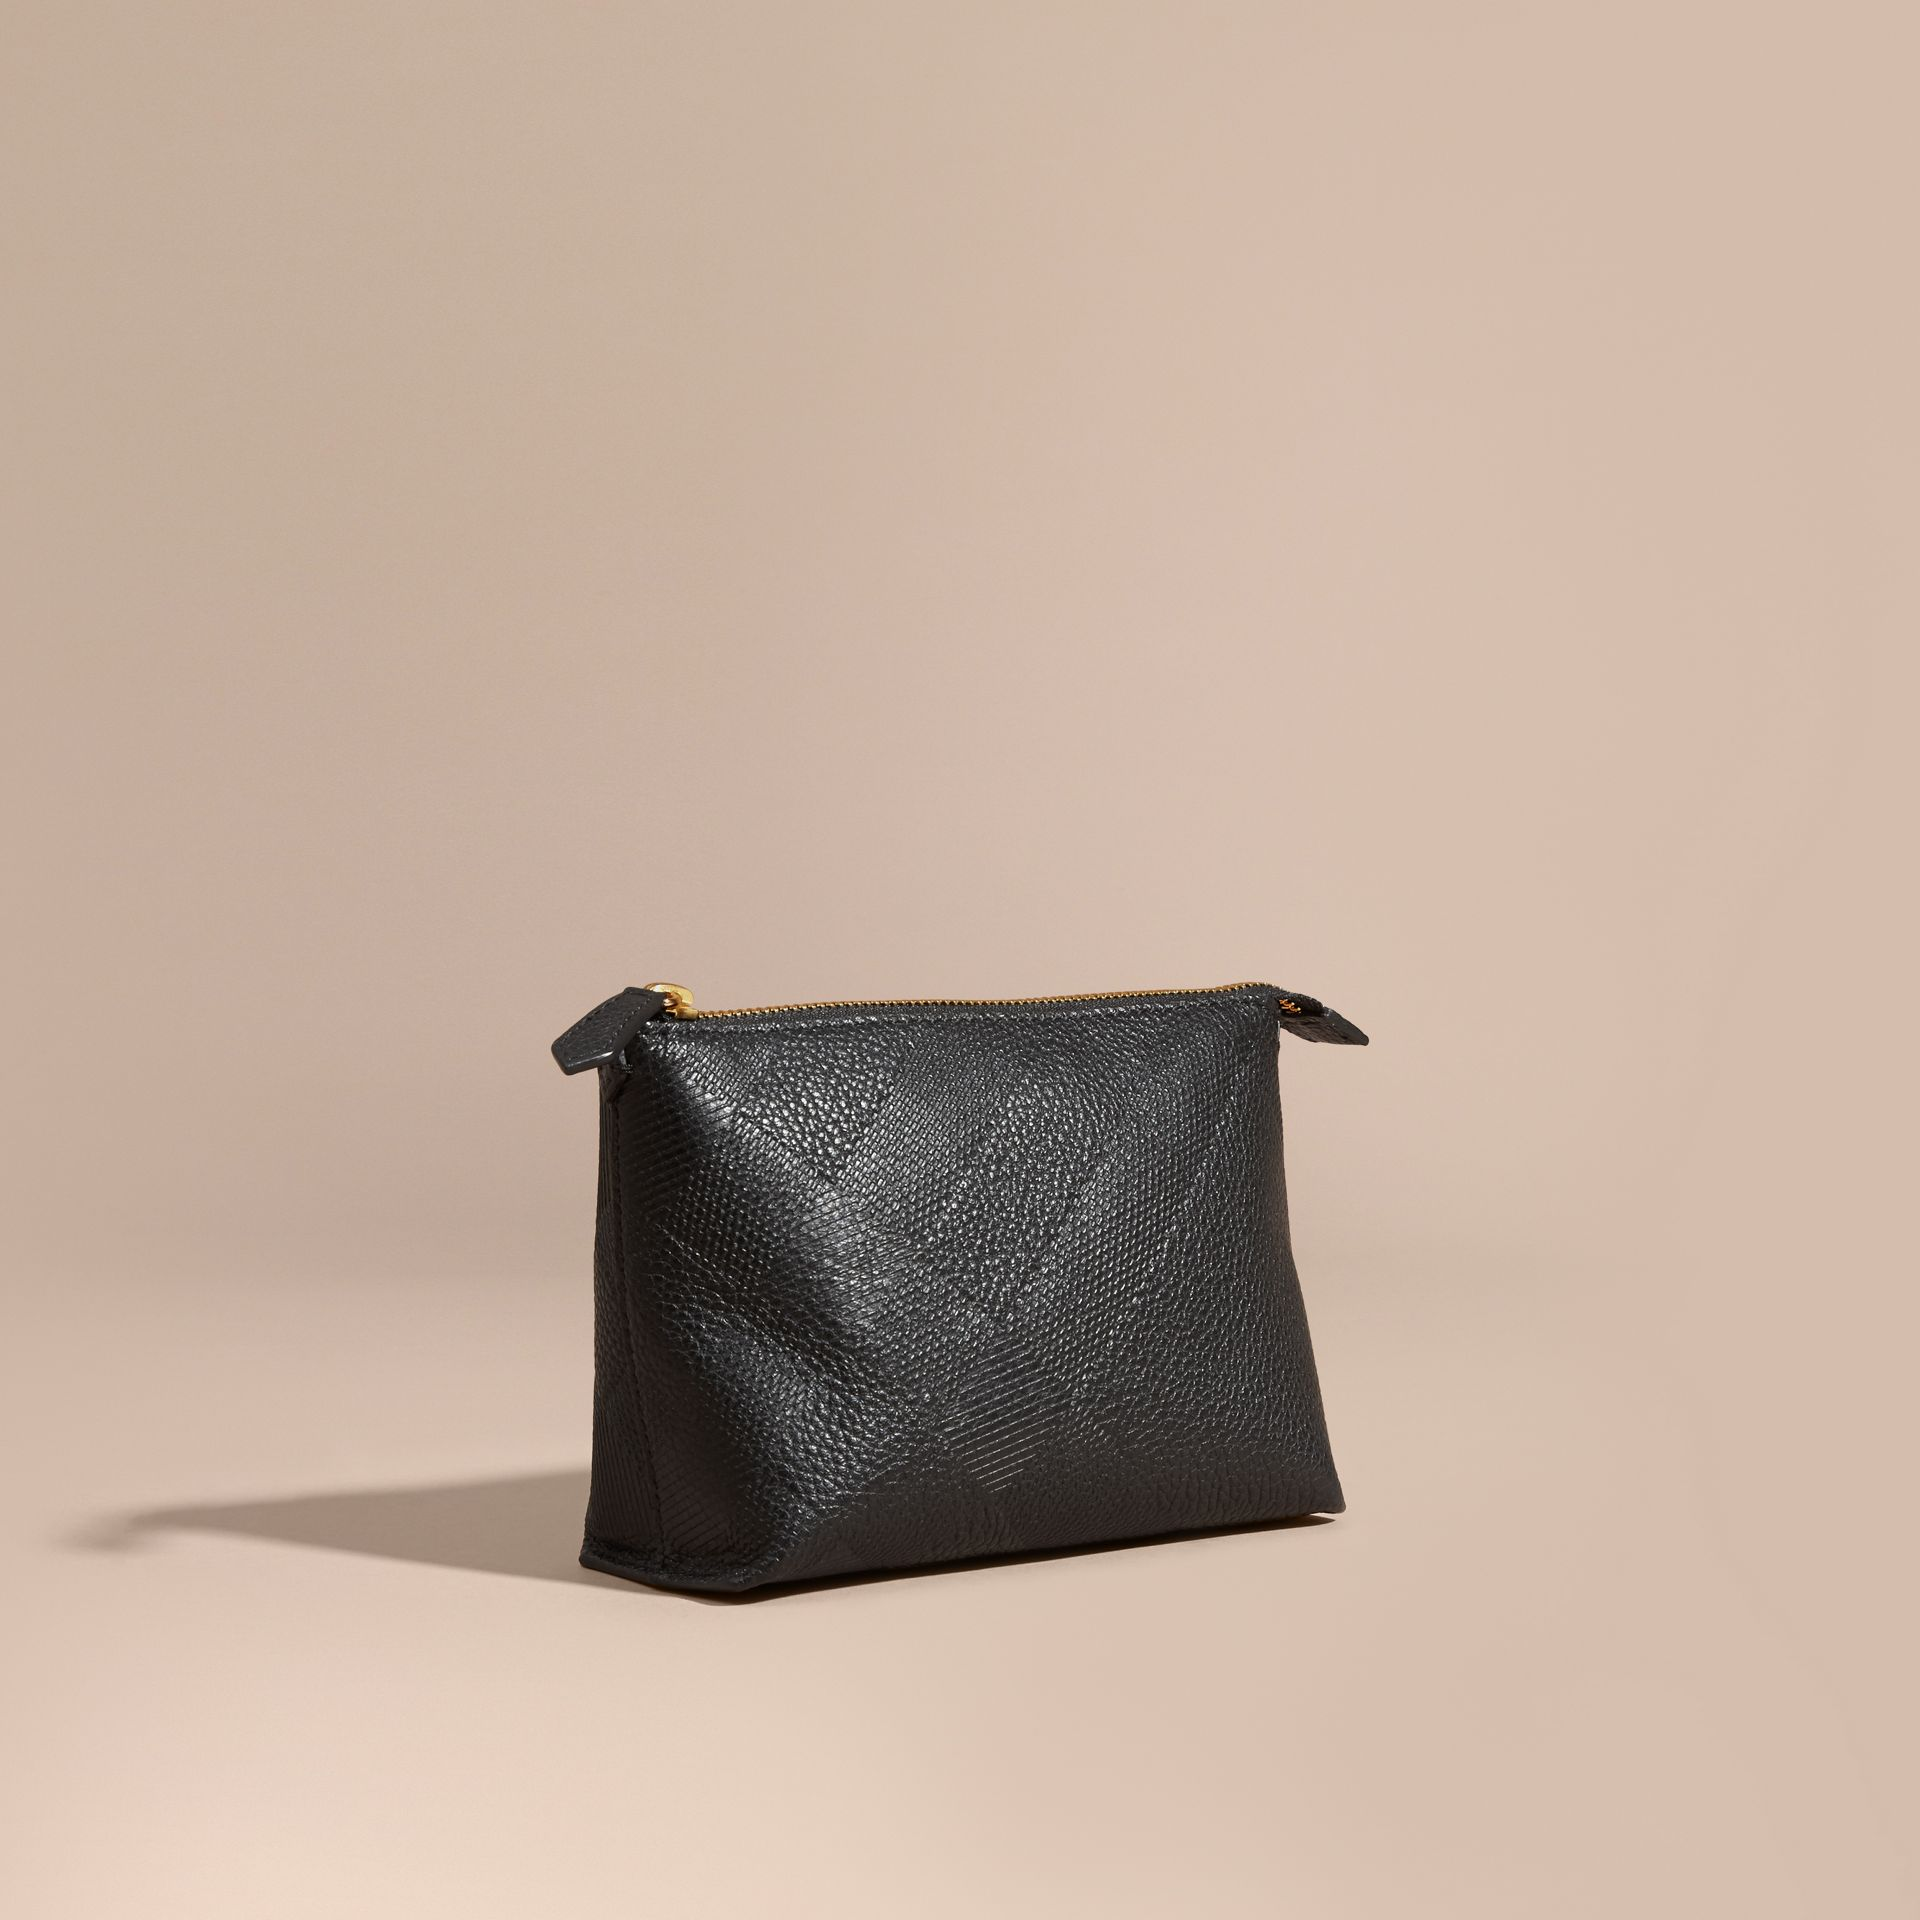 Black Embossed Check Leather Beauty Pouch Black - gallery image 1